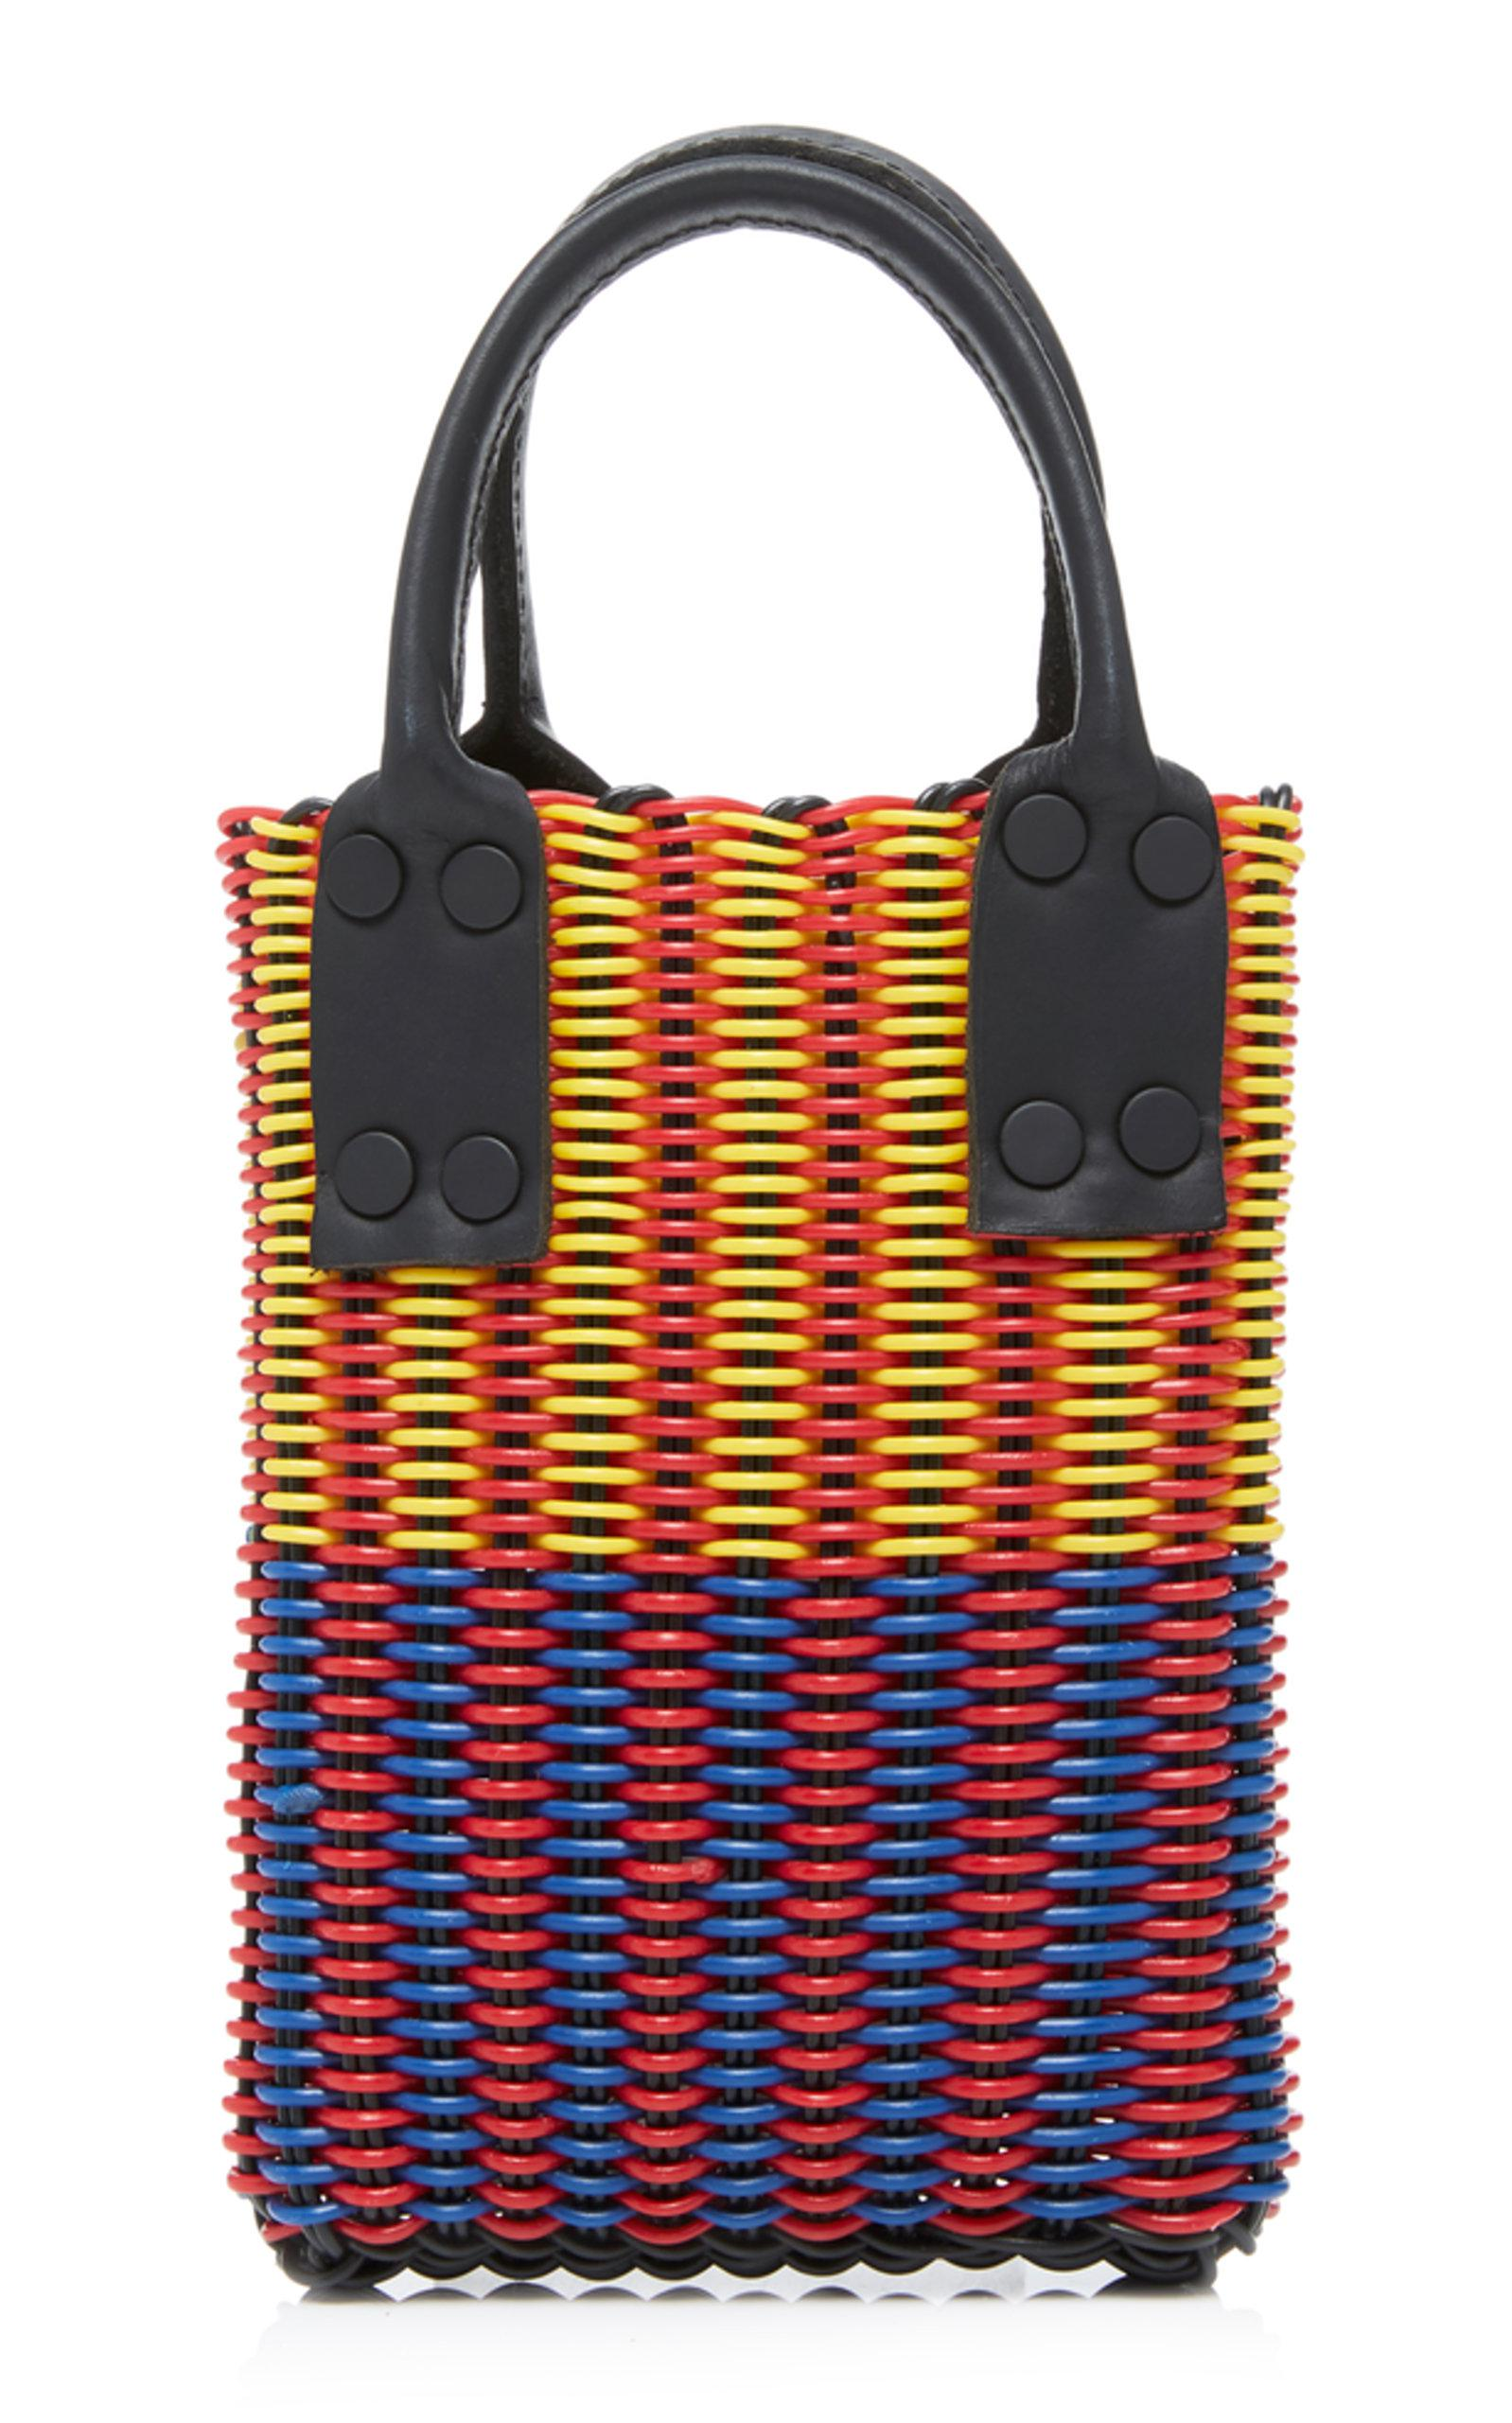 Truss Micro Tube Weave Tote With Leather Handle CYsV6